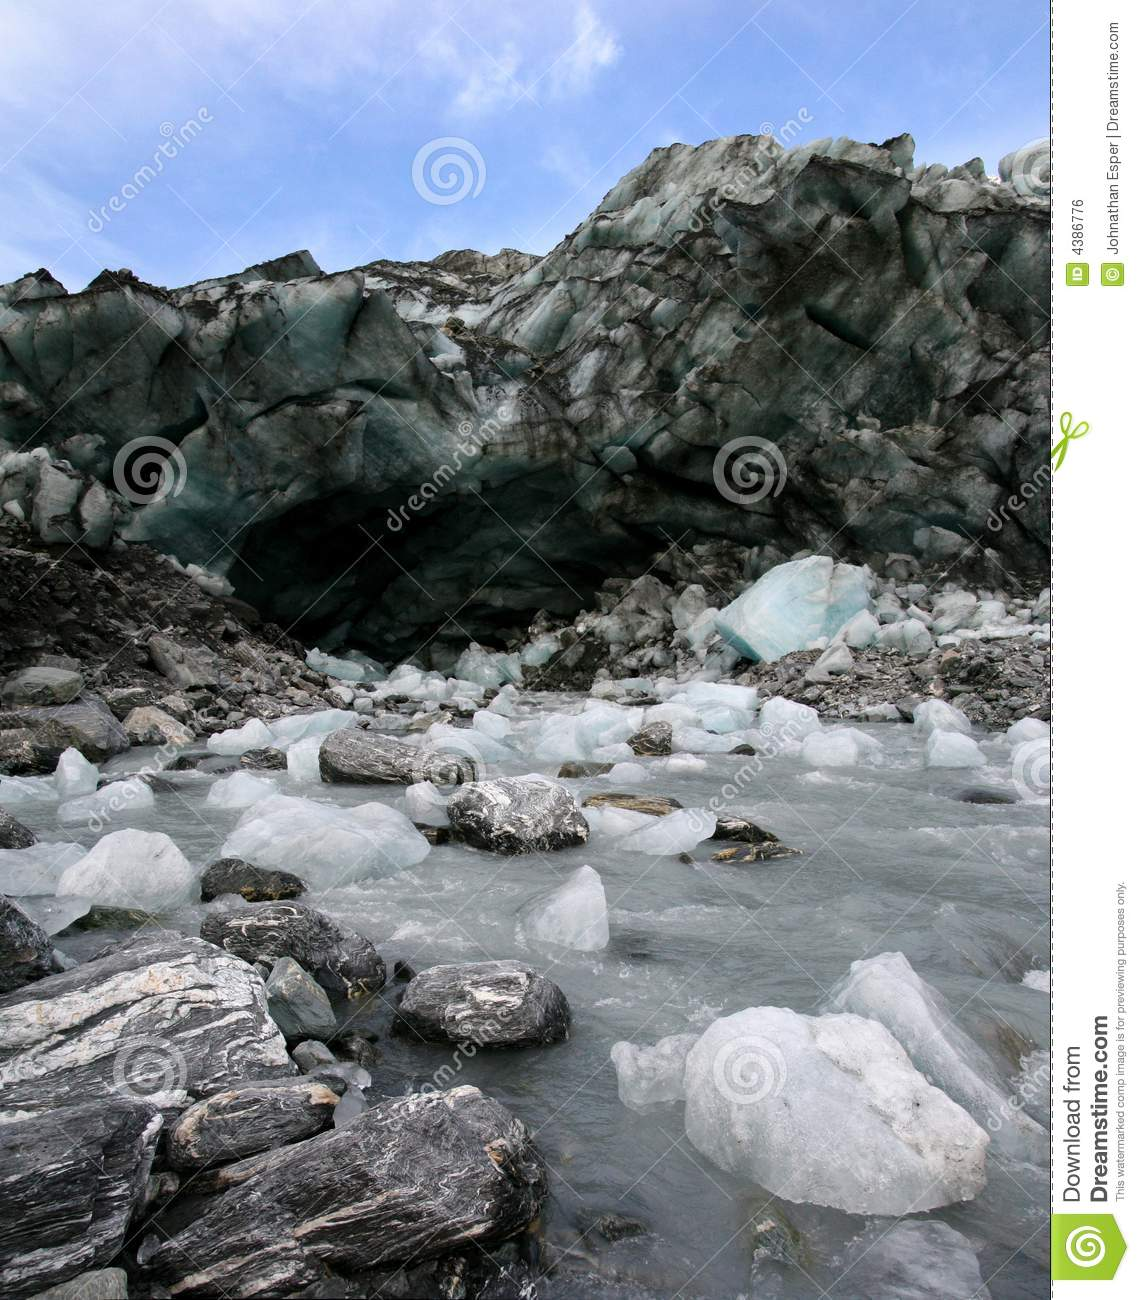 Melting ice from a low-elevation glacier